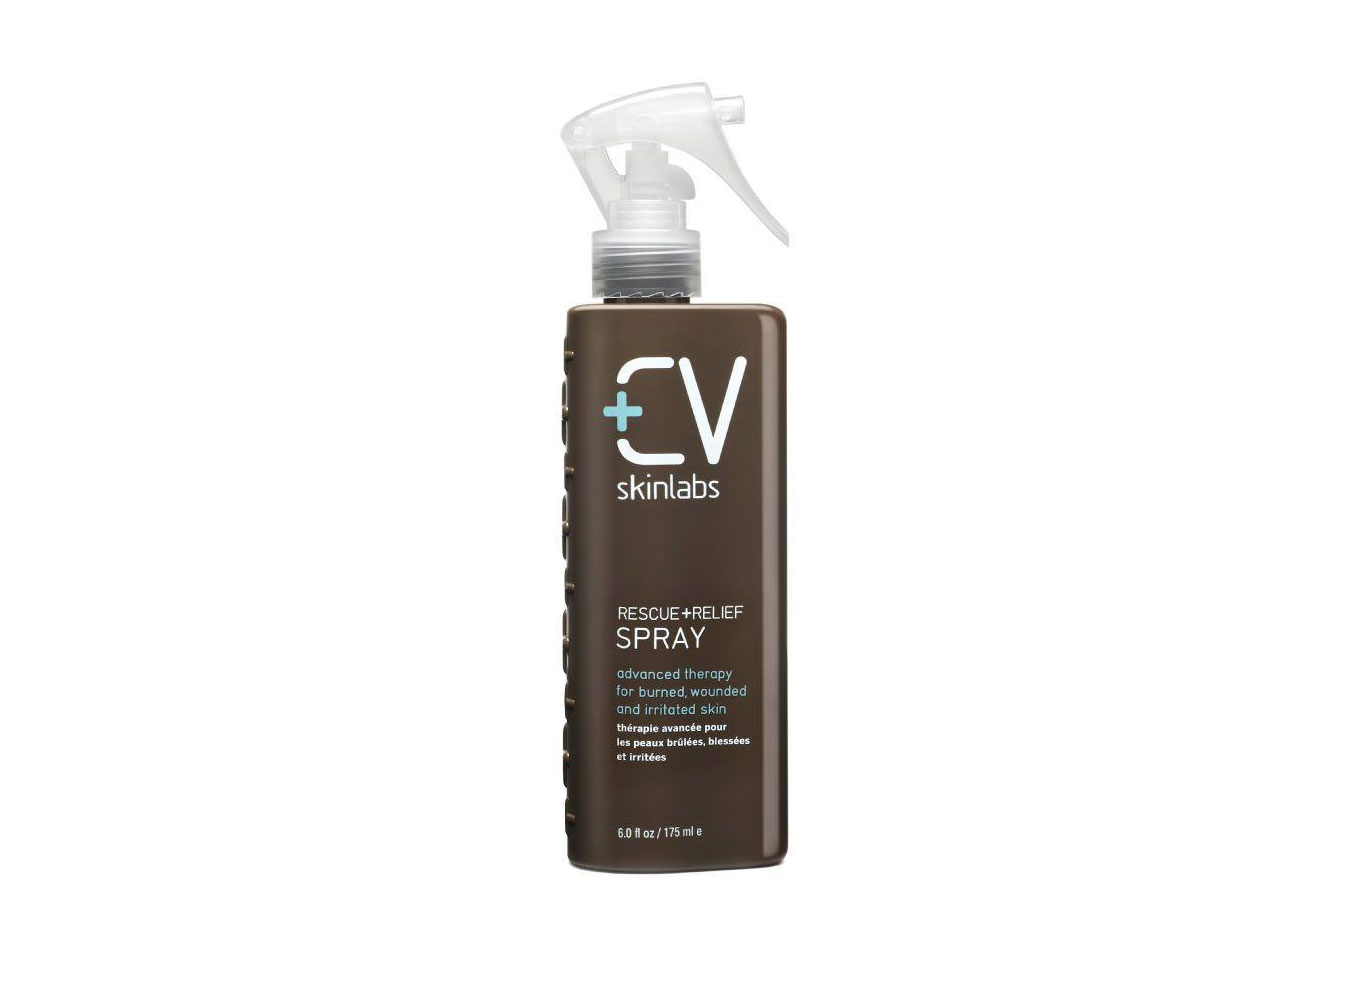 CV Skinlabs Rescue + Relief Spray